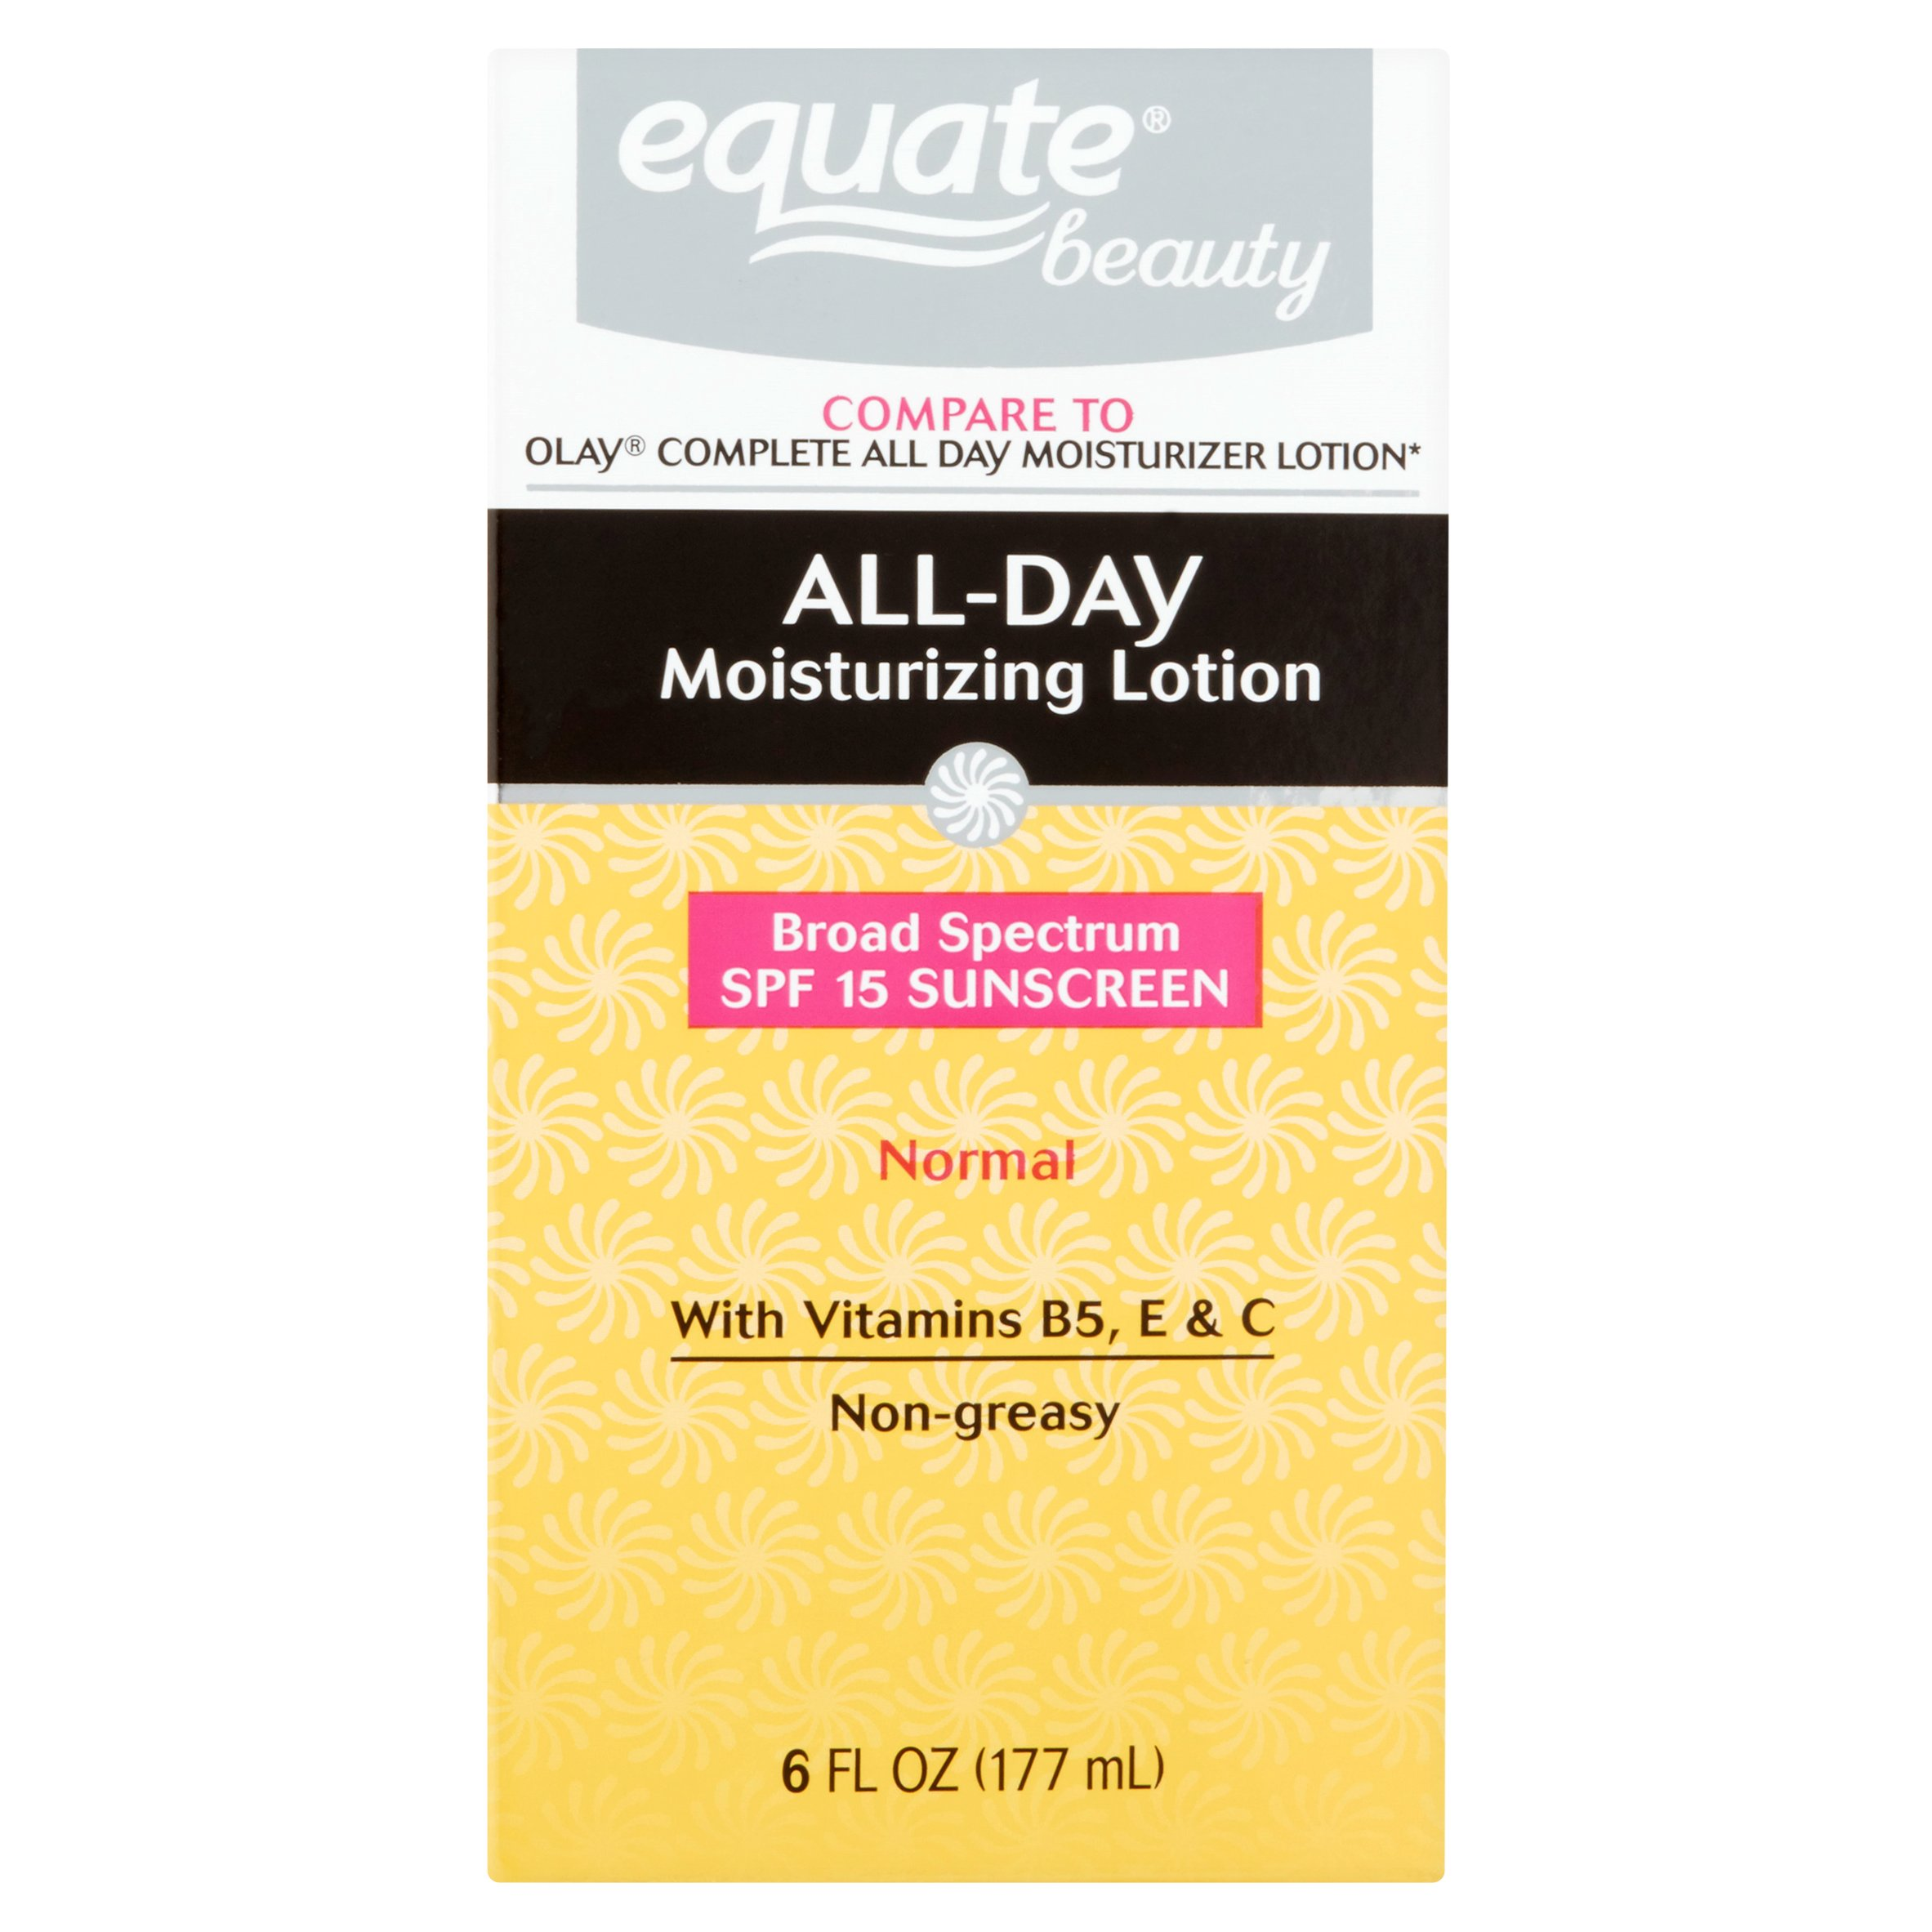 Equate Beauty Normal Skin All-Day Moisturizing Lotion with Sunscreen, 6 Fl Oz